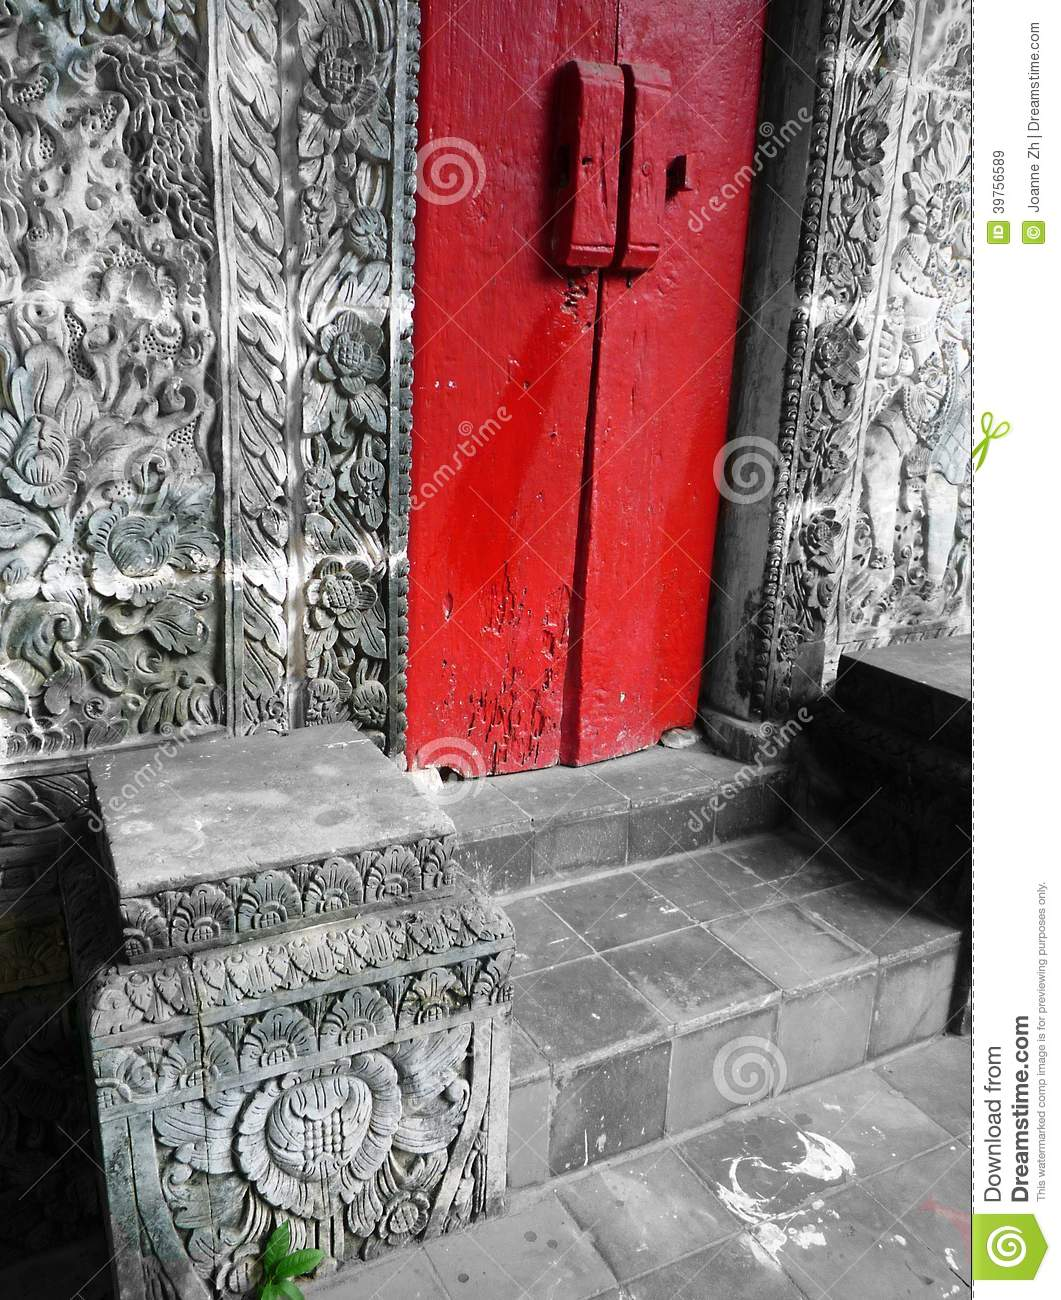 Bali house with red door stone carved walls stock image